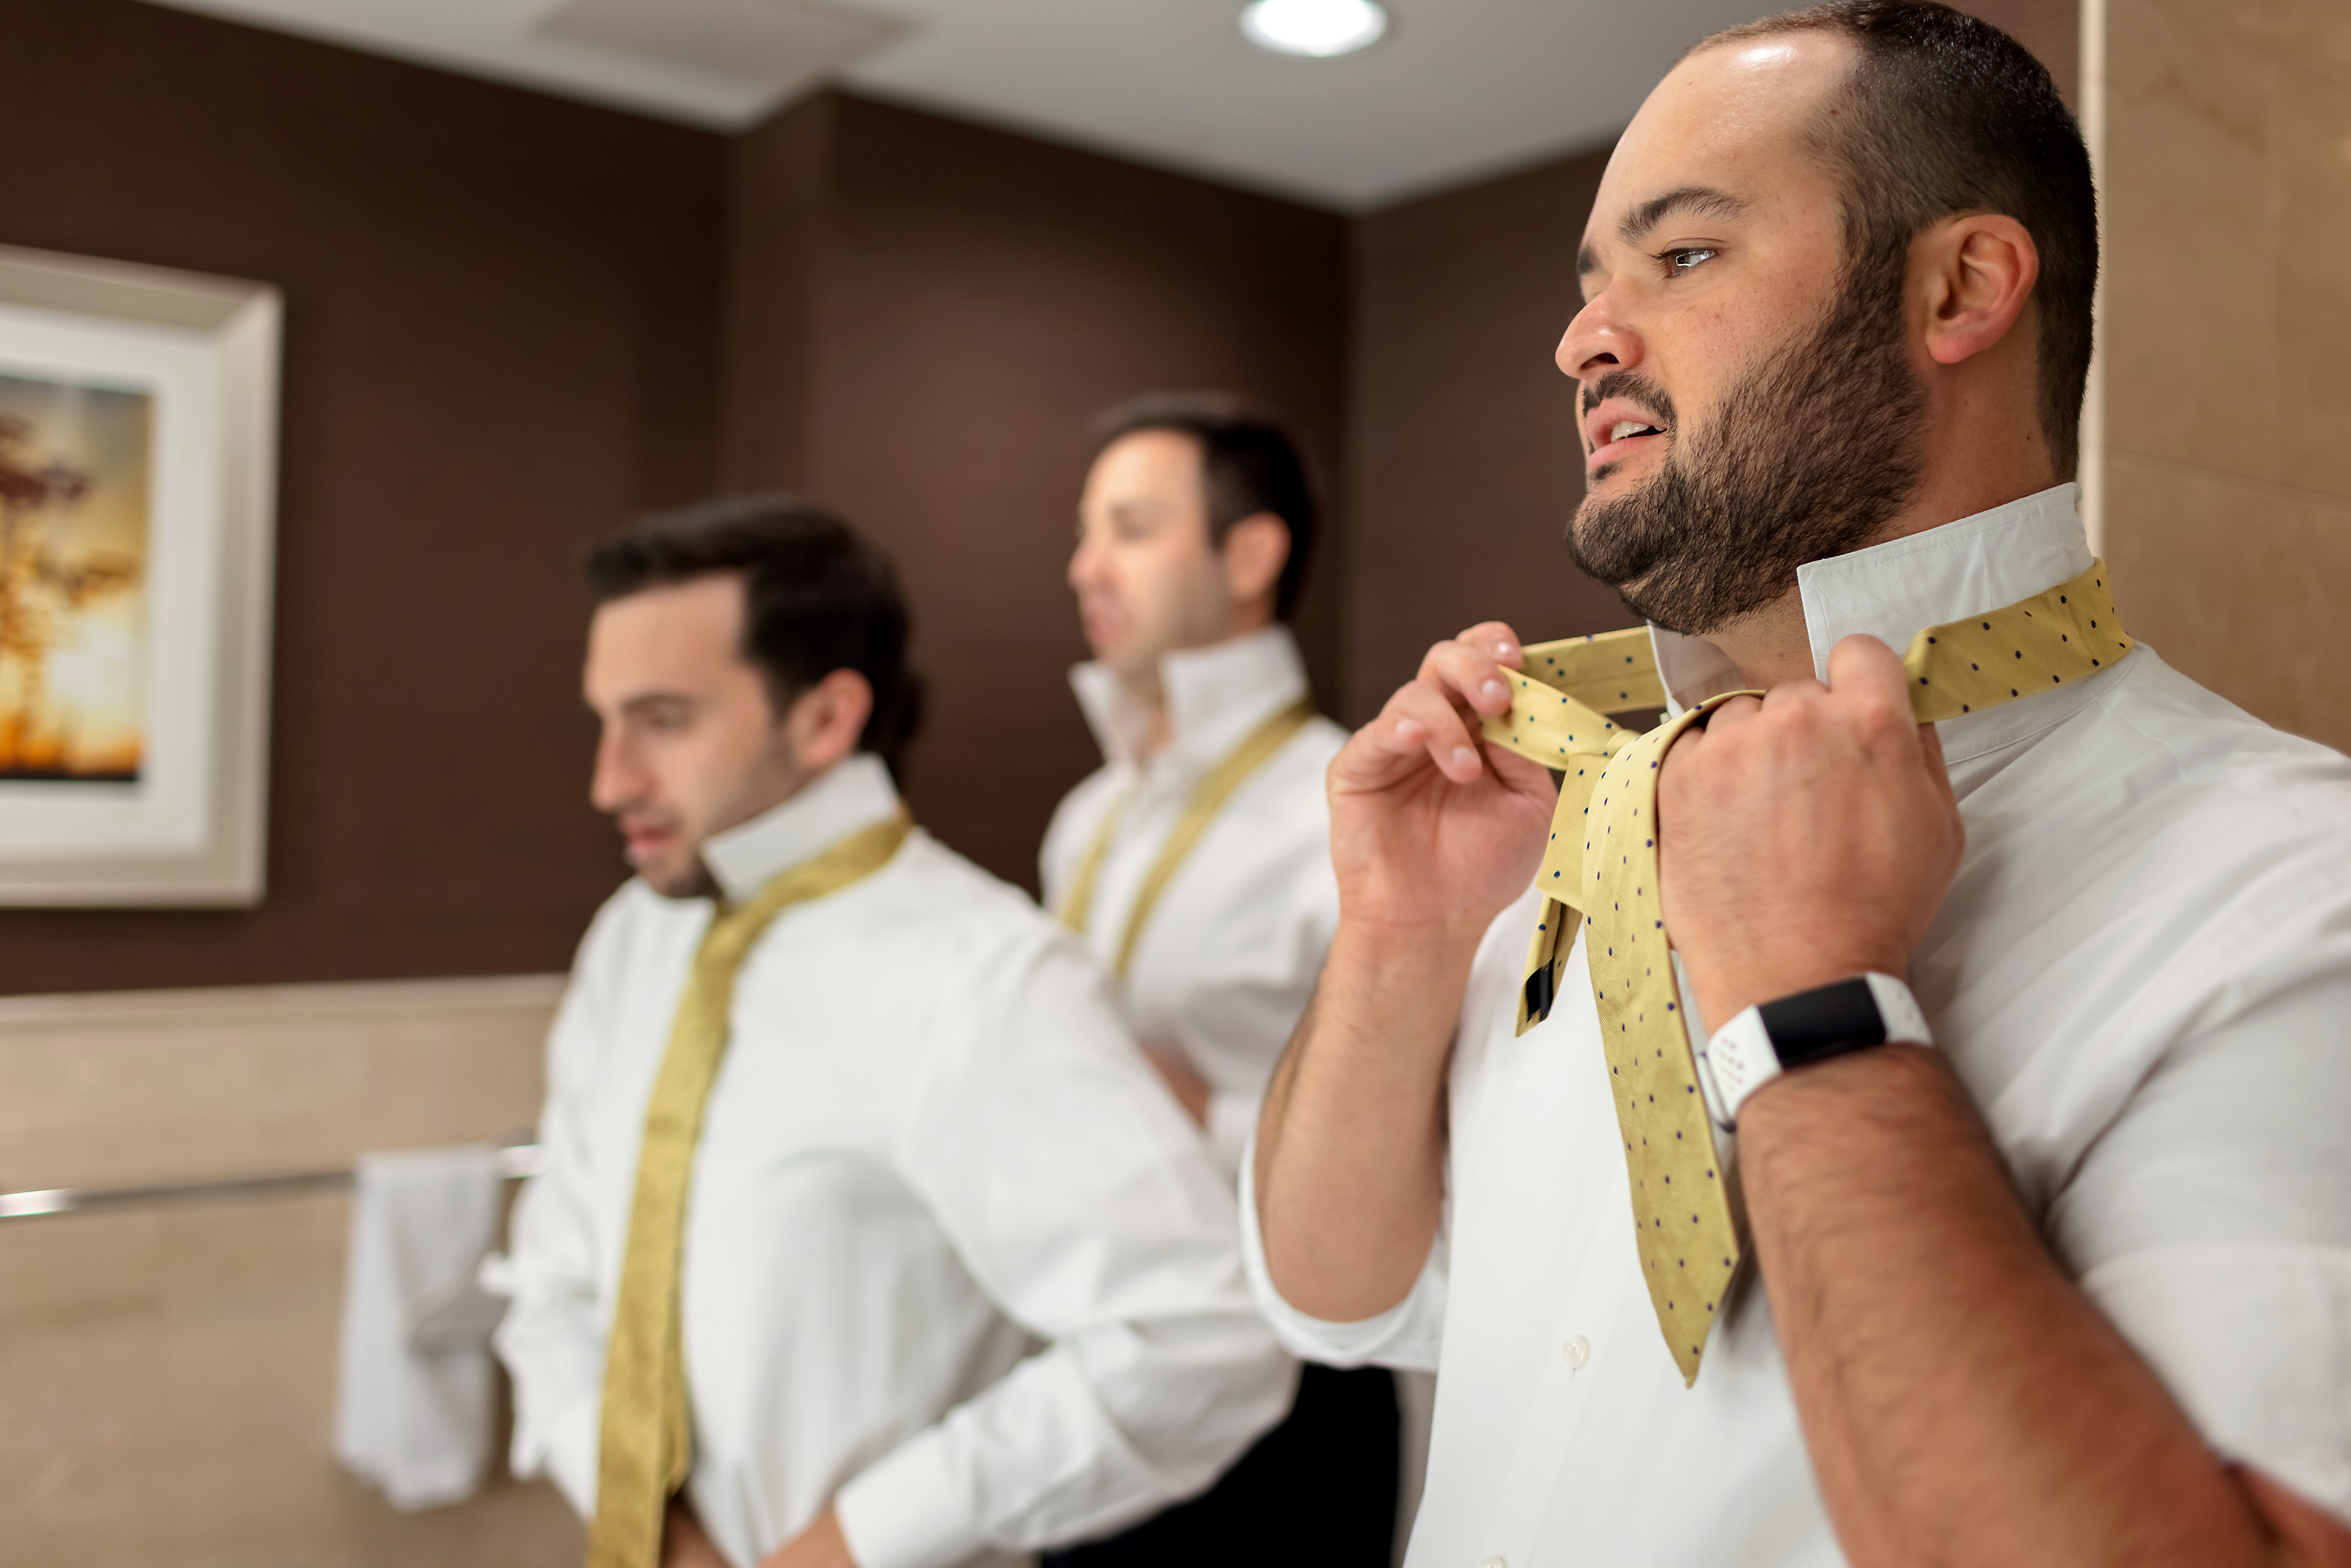 Groomsmen put on ties while getting ready for wedding